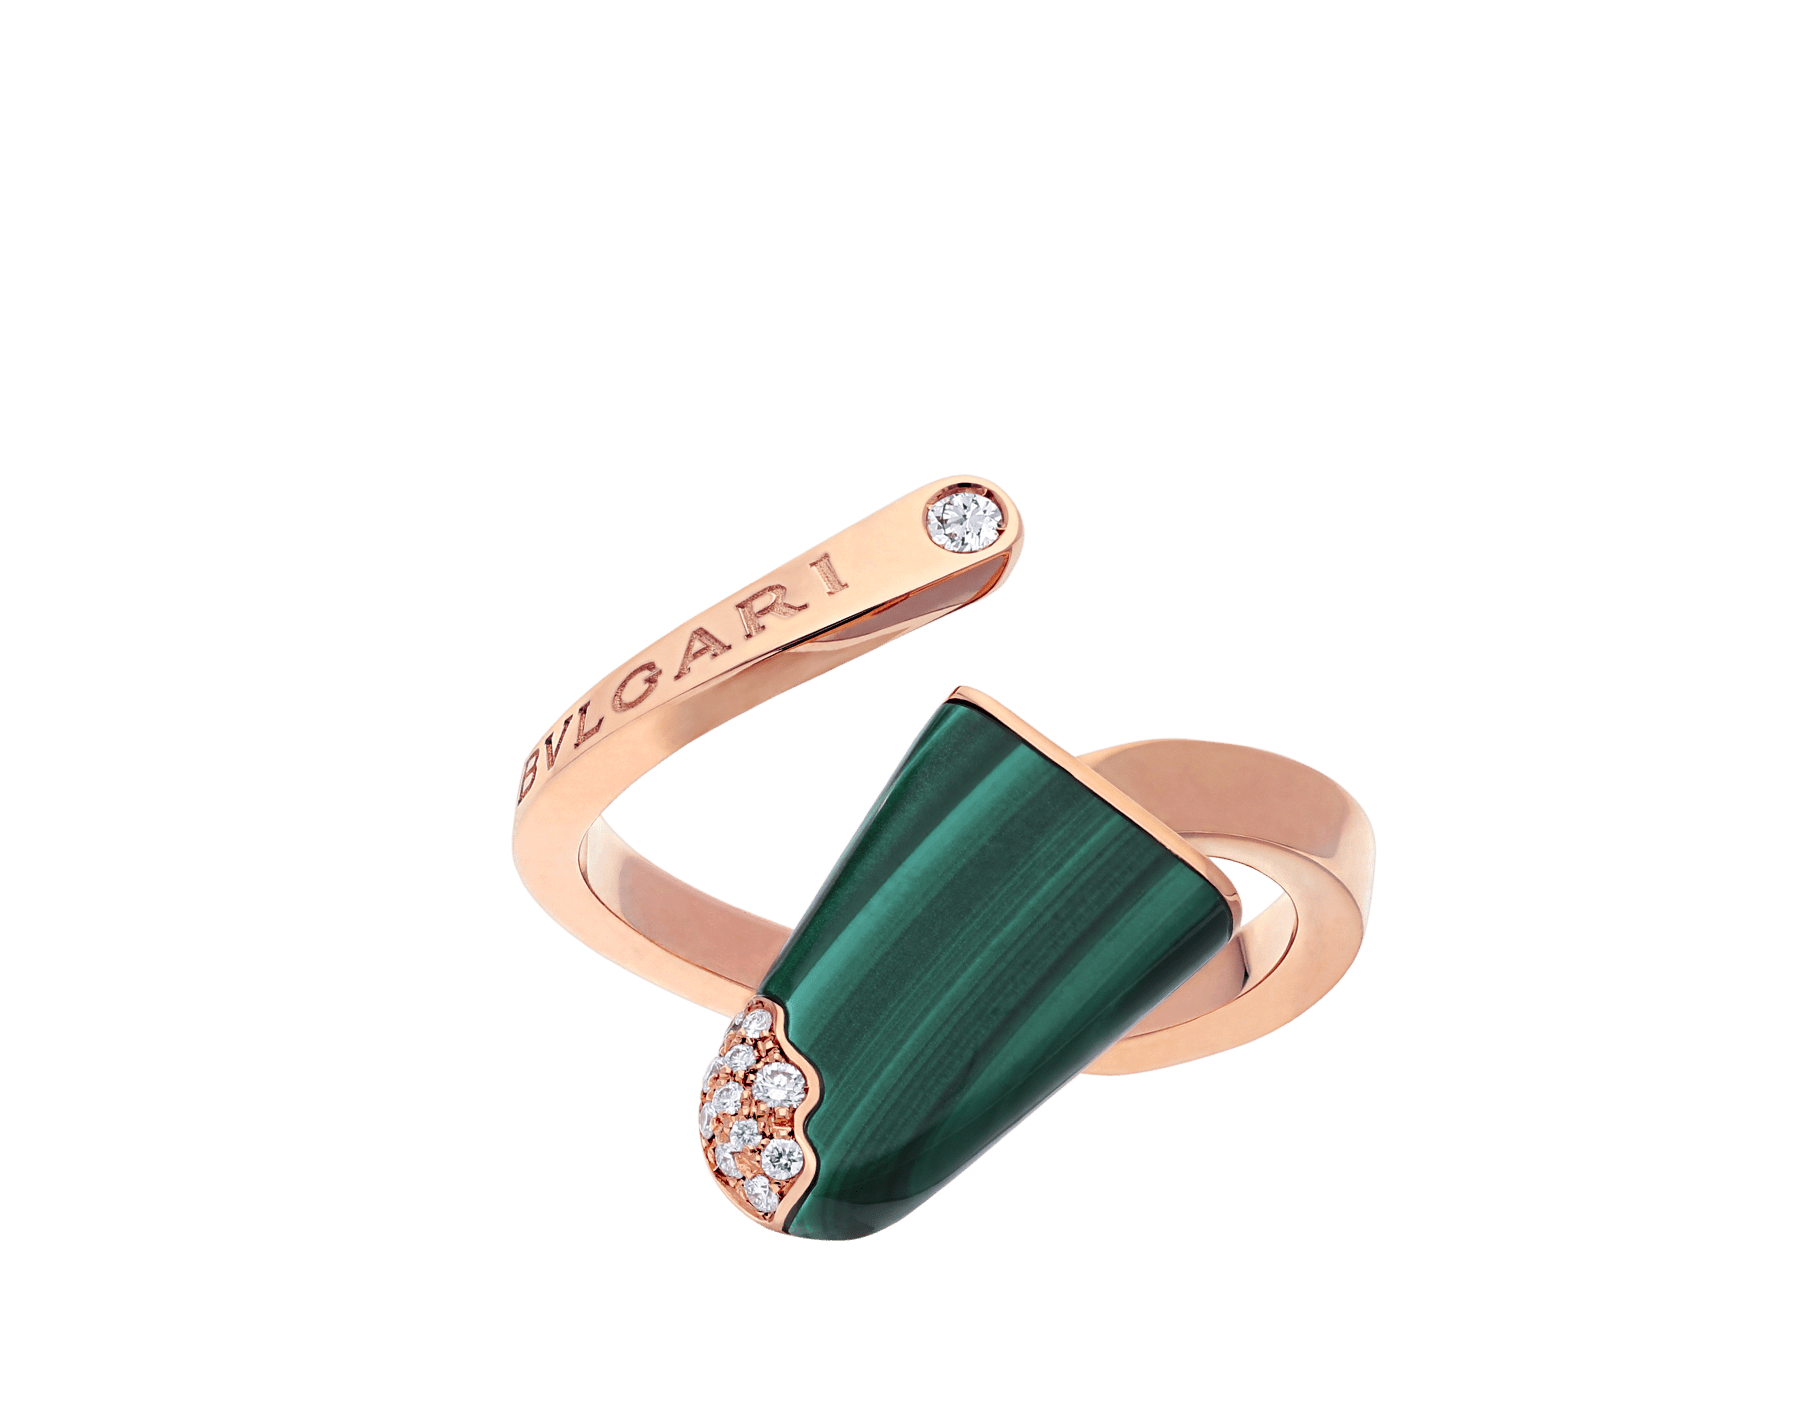 BVLGARI BVLGARI Gelati 18 kt rose gold ring set with malachite and pavé diamonds AN858329 image 1